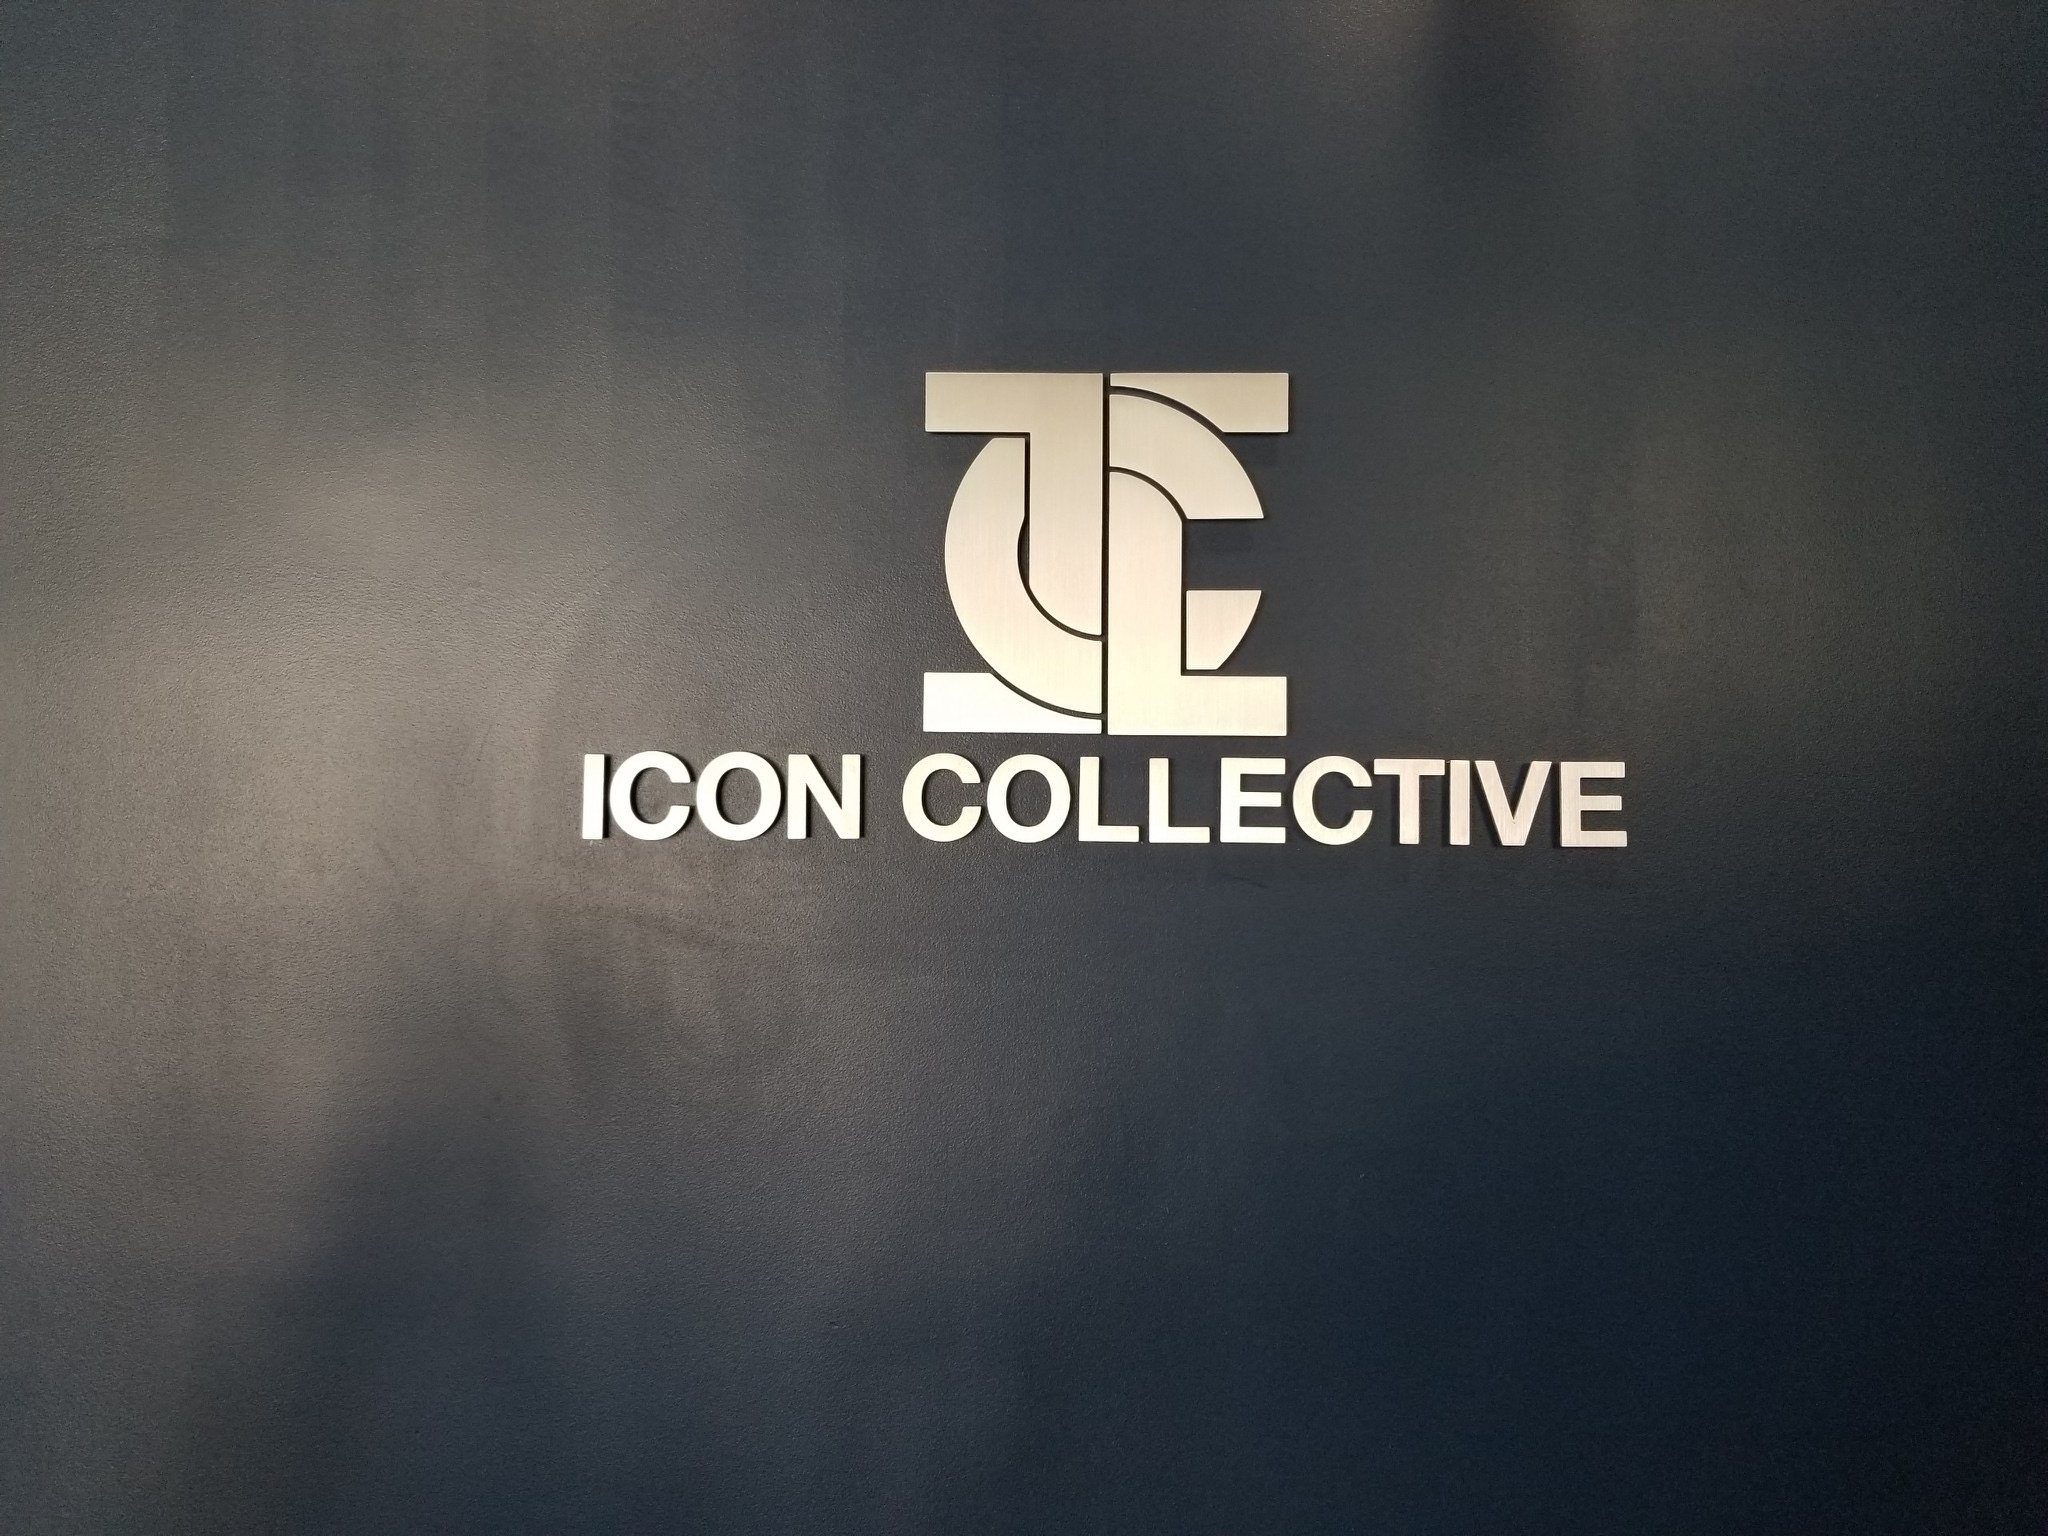 This is the metal lobby sign we installed for Icon Collective, part of a large outdoor and indoor business sign package for the school in Burbank.